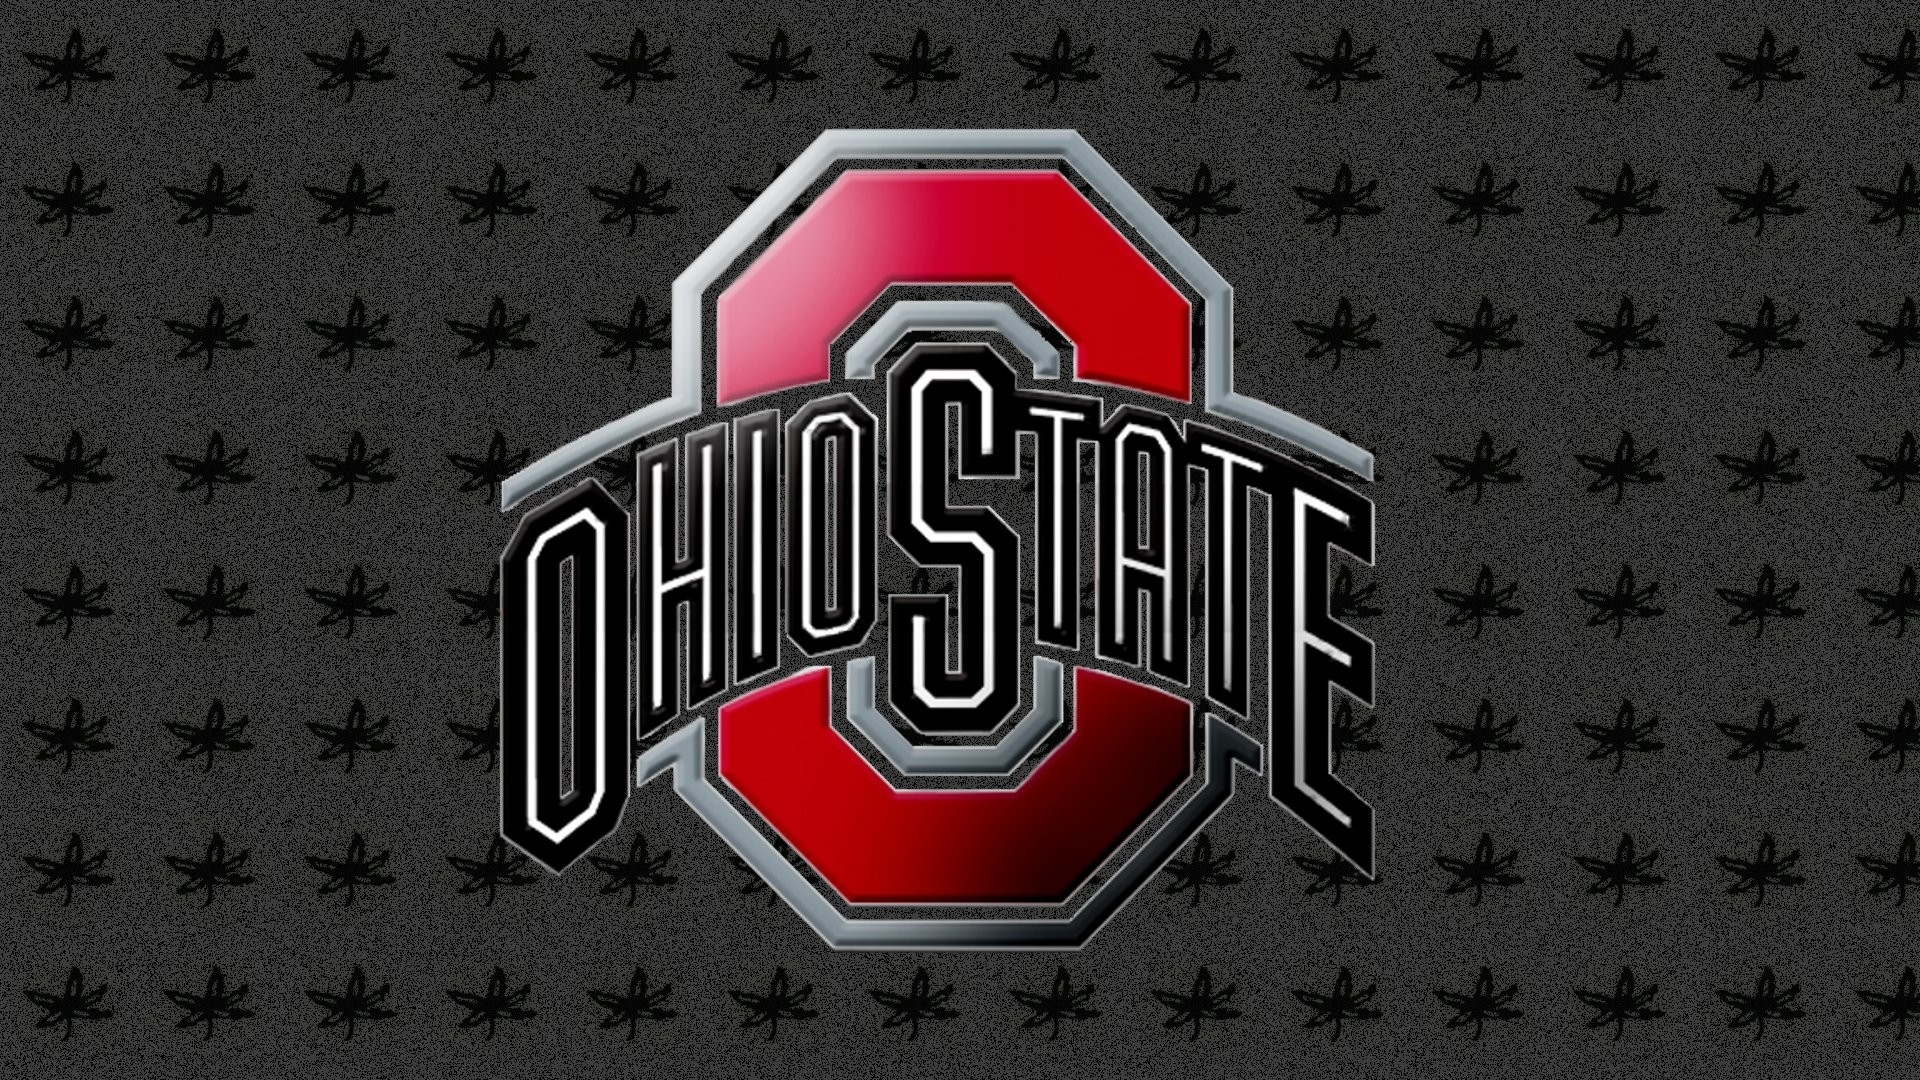 ohio state screensavers and wallpaper (78+ images)